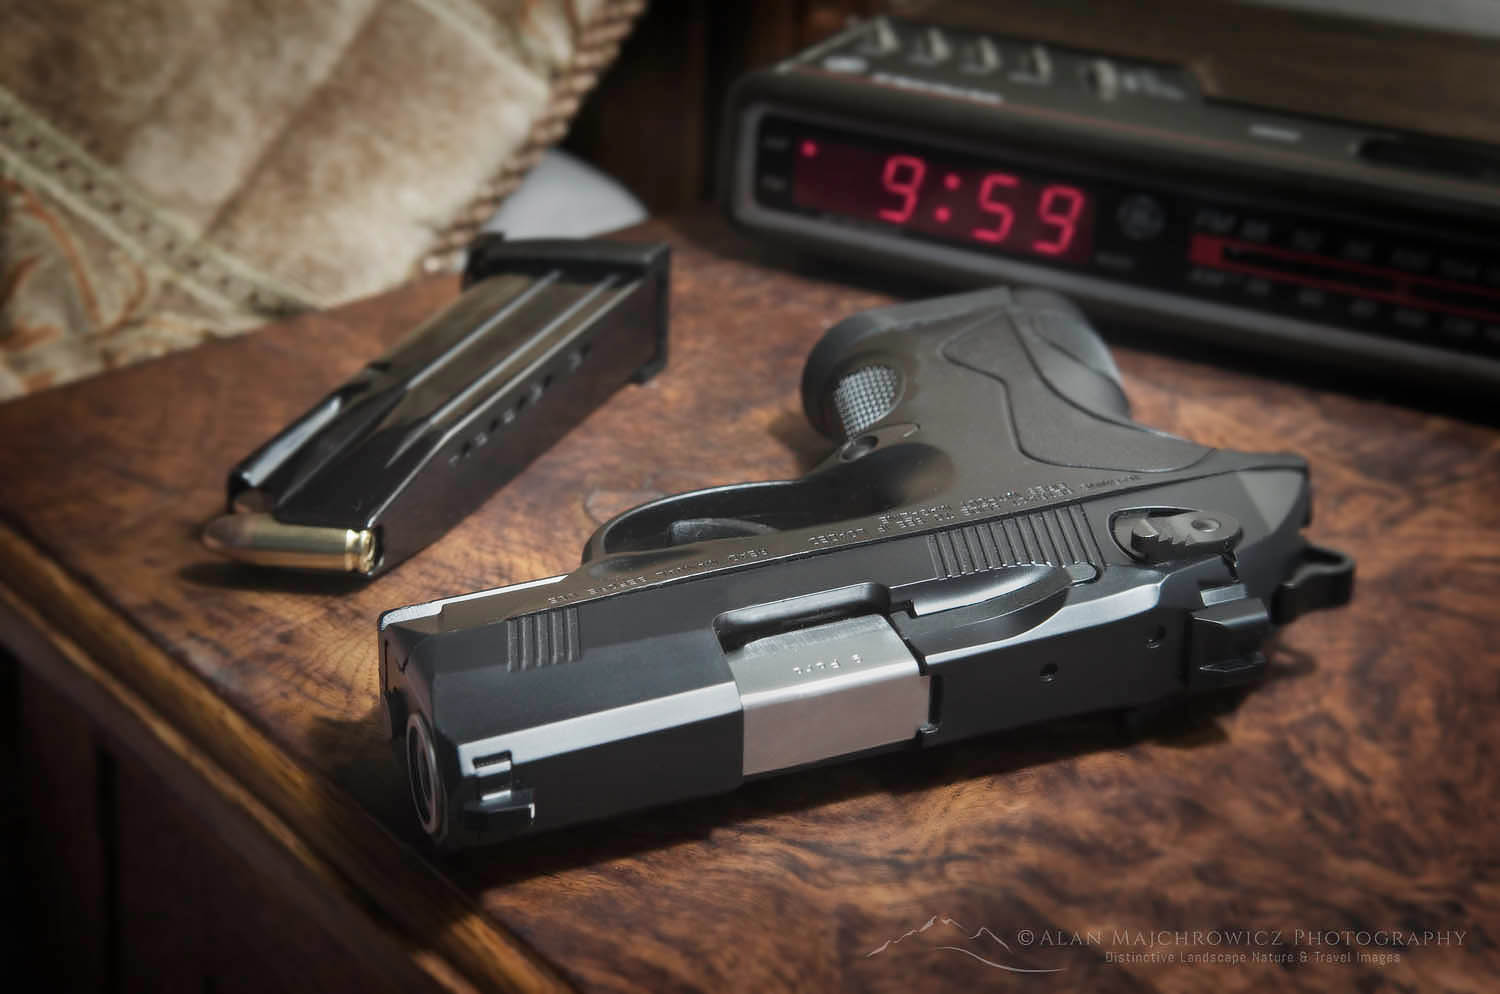 Beretta 9mm PX4 Storm semi-automatic pistol home defense. On bedside nightstand with book and reading glasses